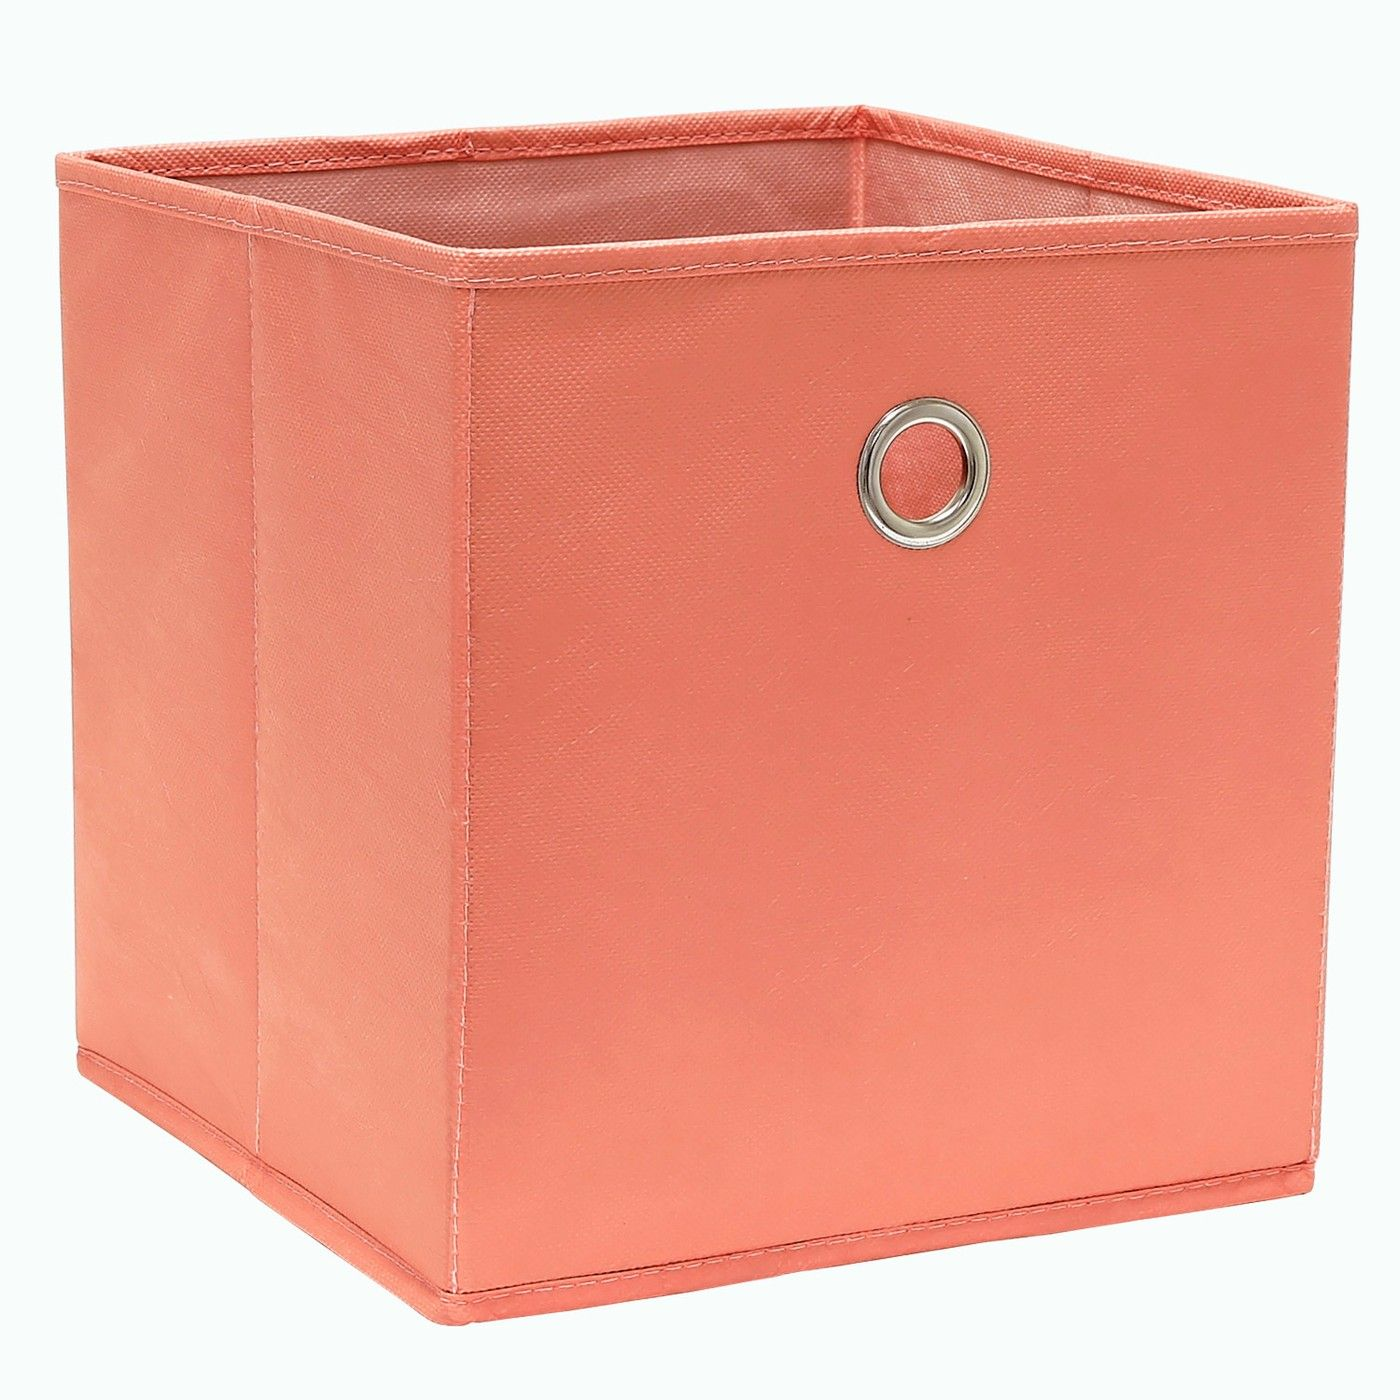 Fabric Cube Storage Bin 11 Room Essentials Cube Storage Bins Cube Storage Fabric Storage Bins